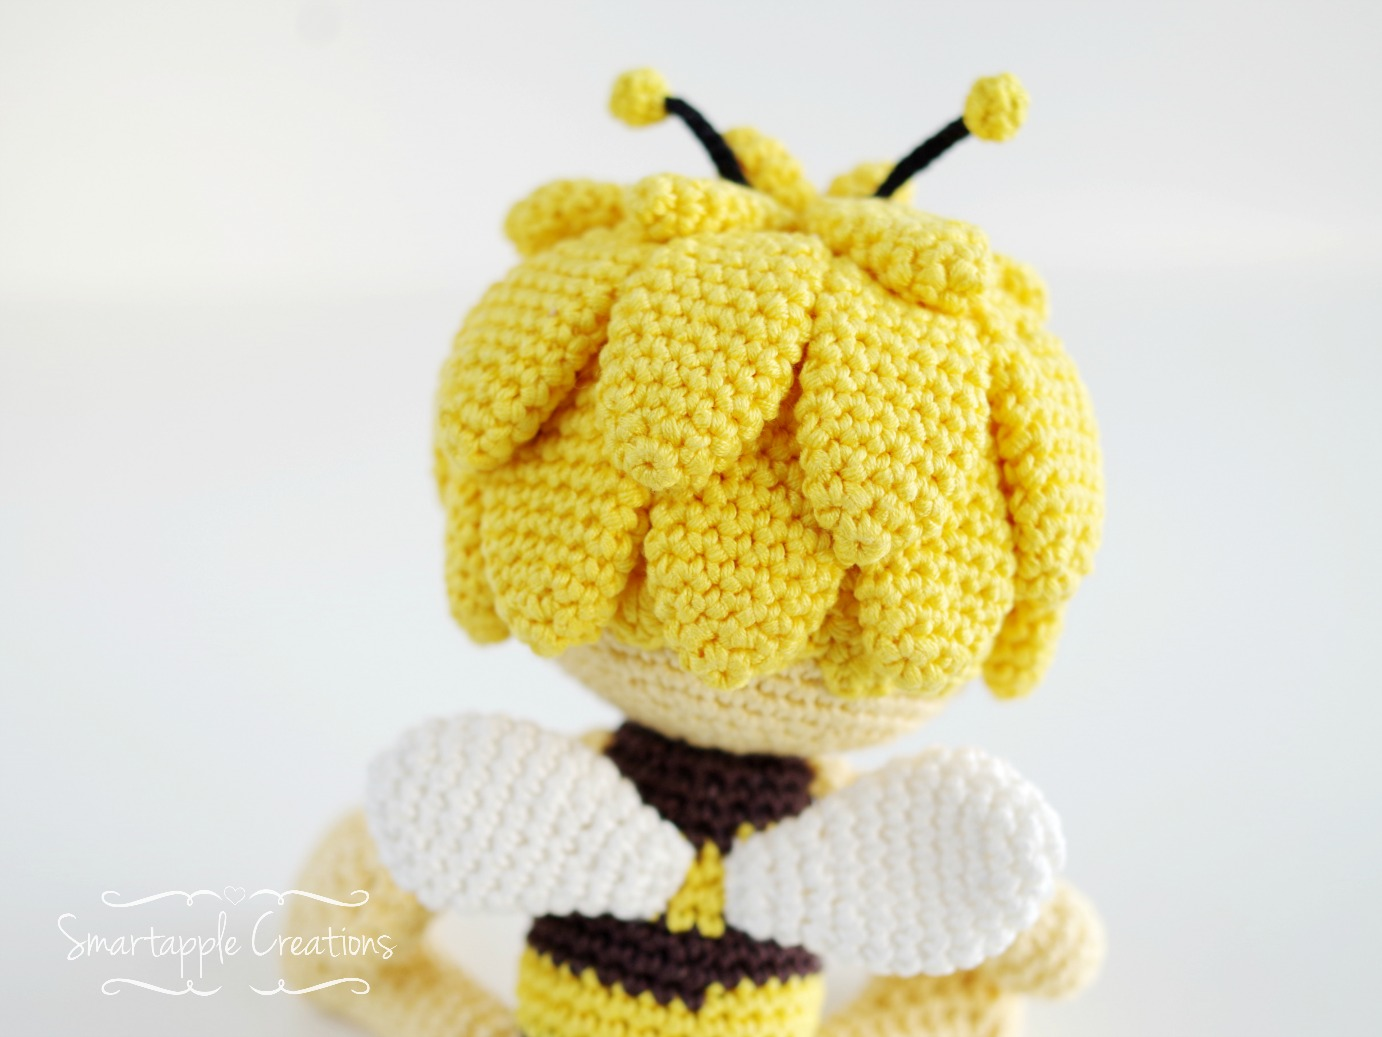 Smartapple Creations - amigurumi and crochet: Maya the Bee